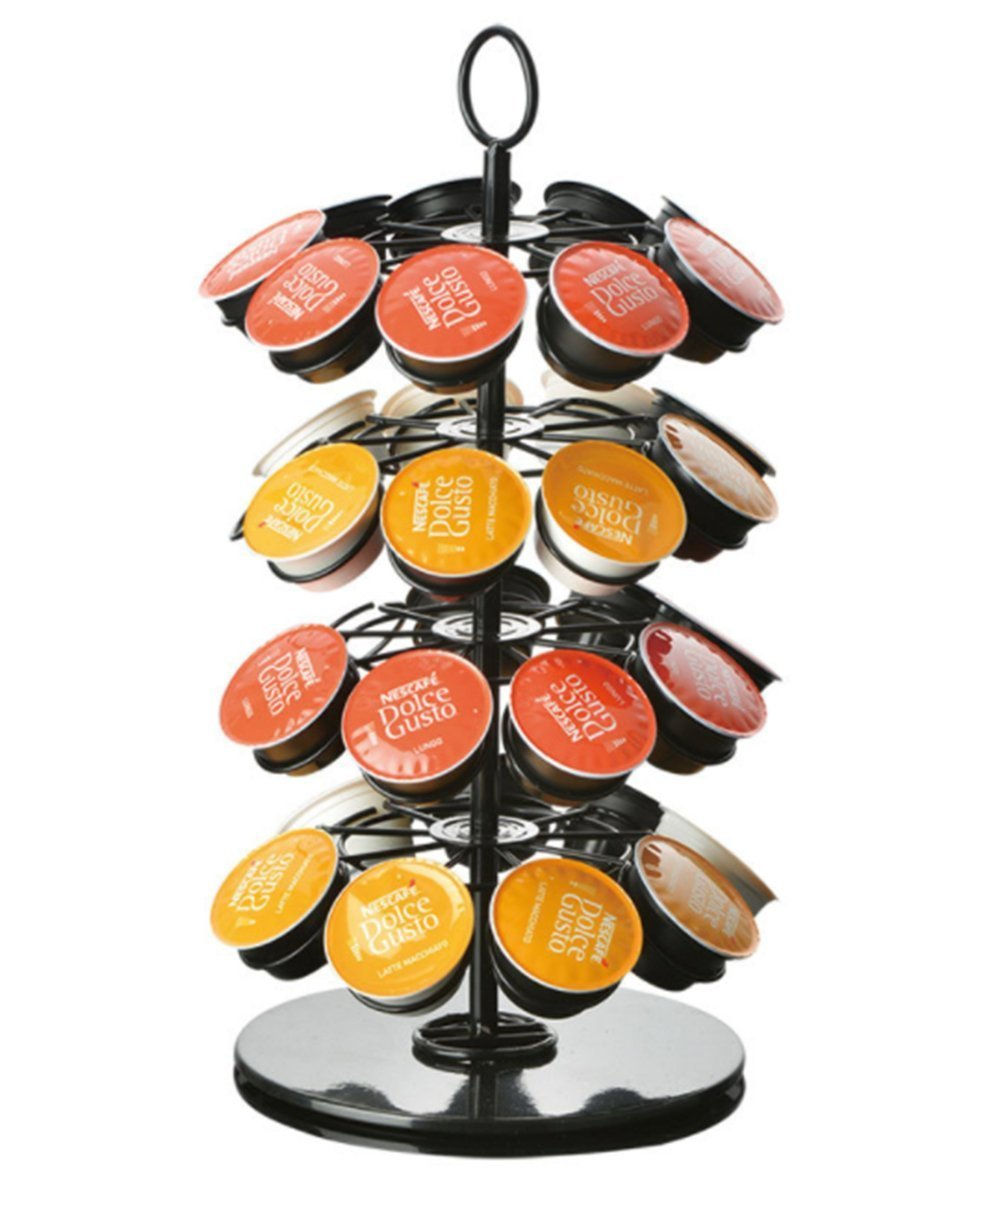 Ranaphil Coffee Storage Carousel For K-Cup Pods Capsule Holder 36 Pod Capacity In Black